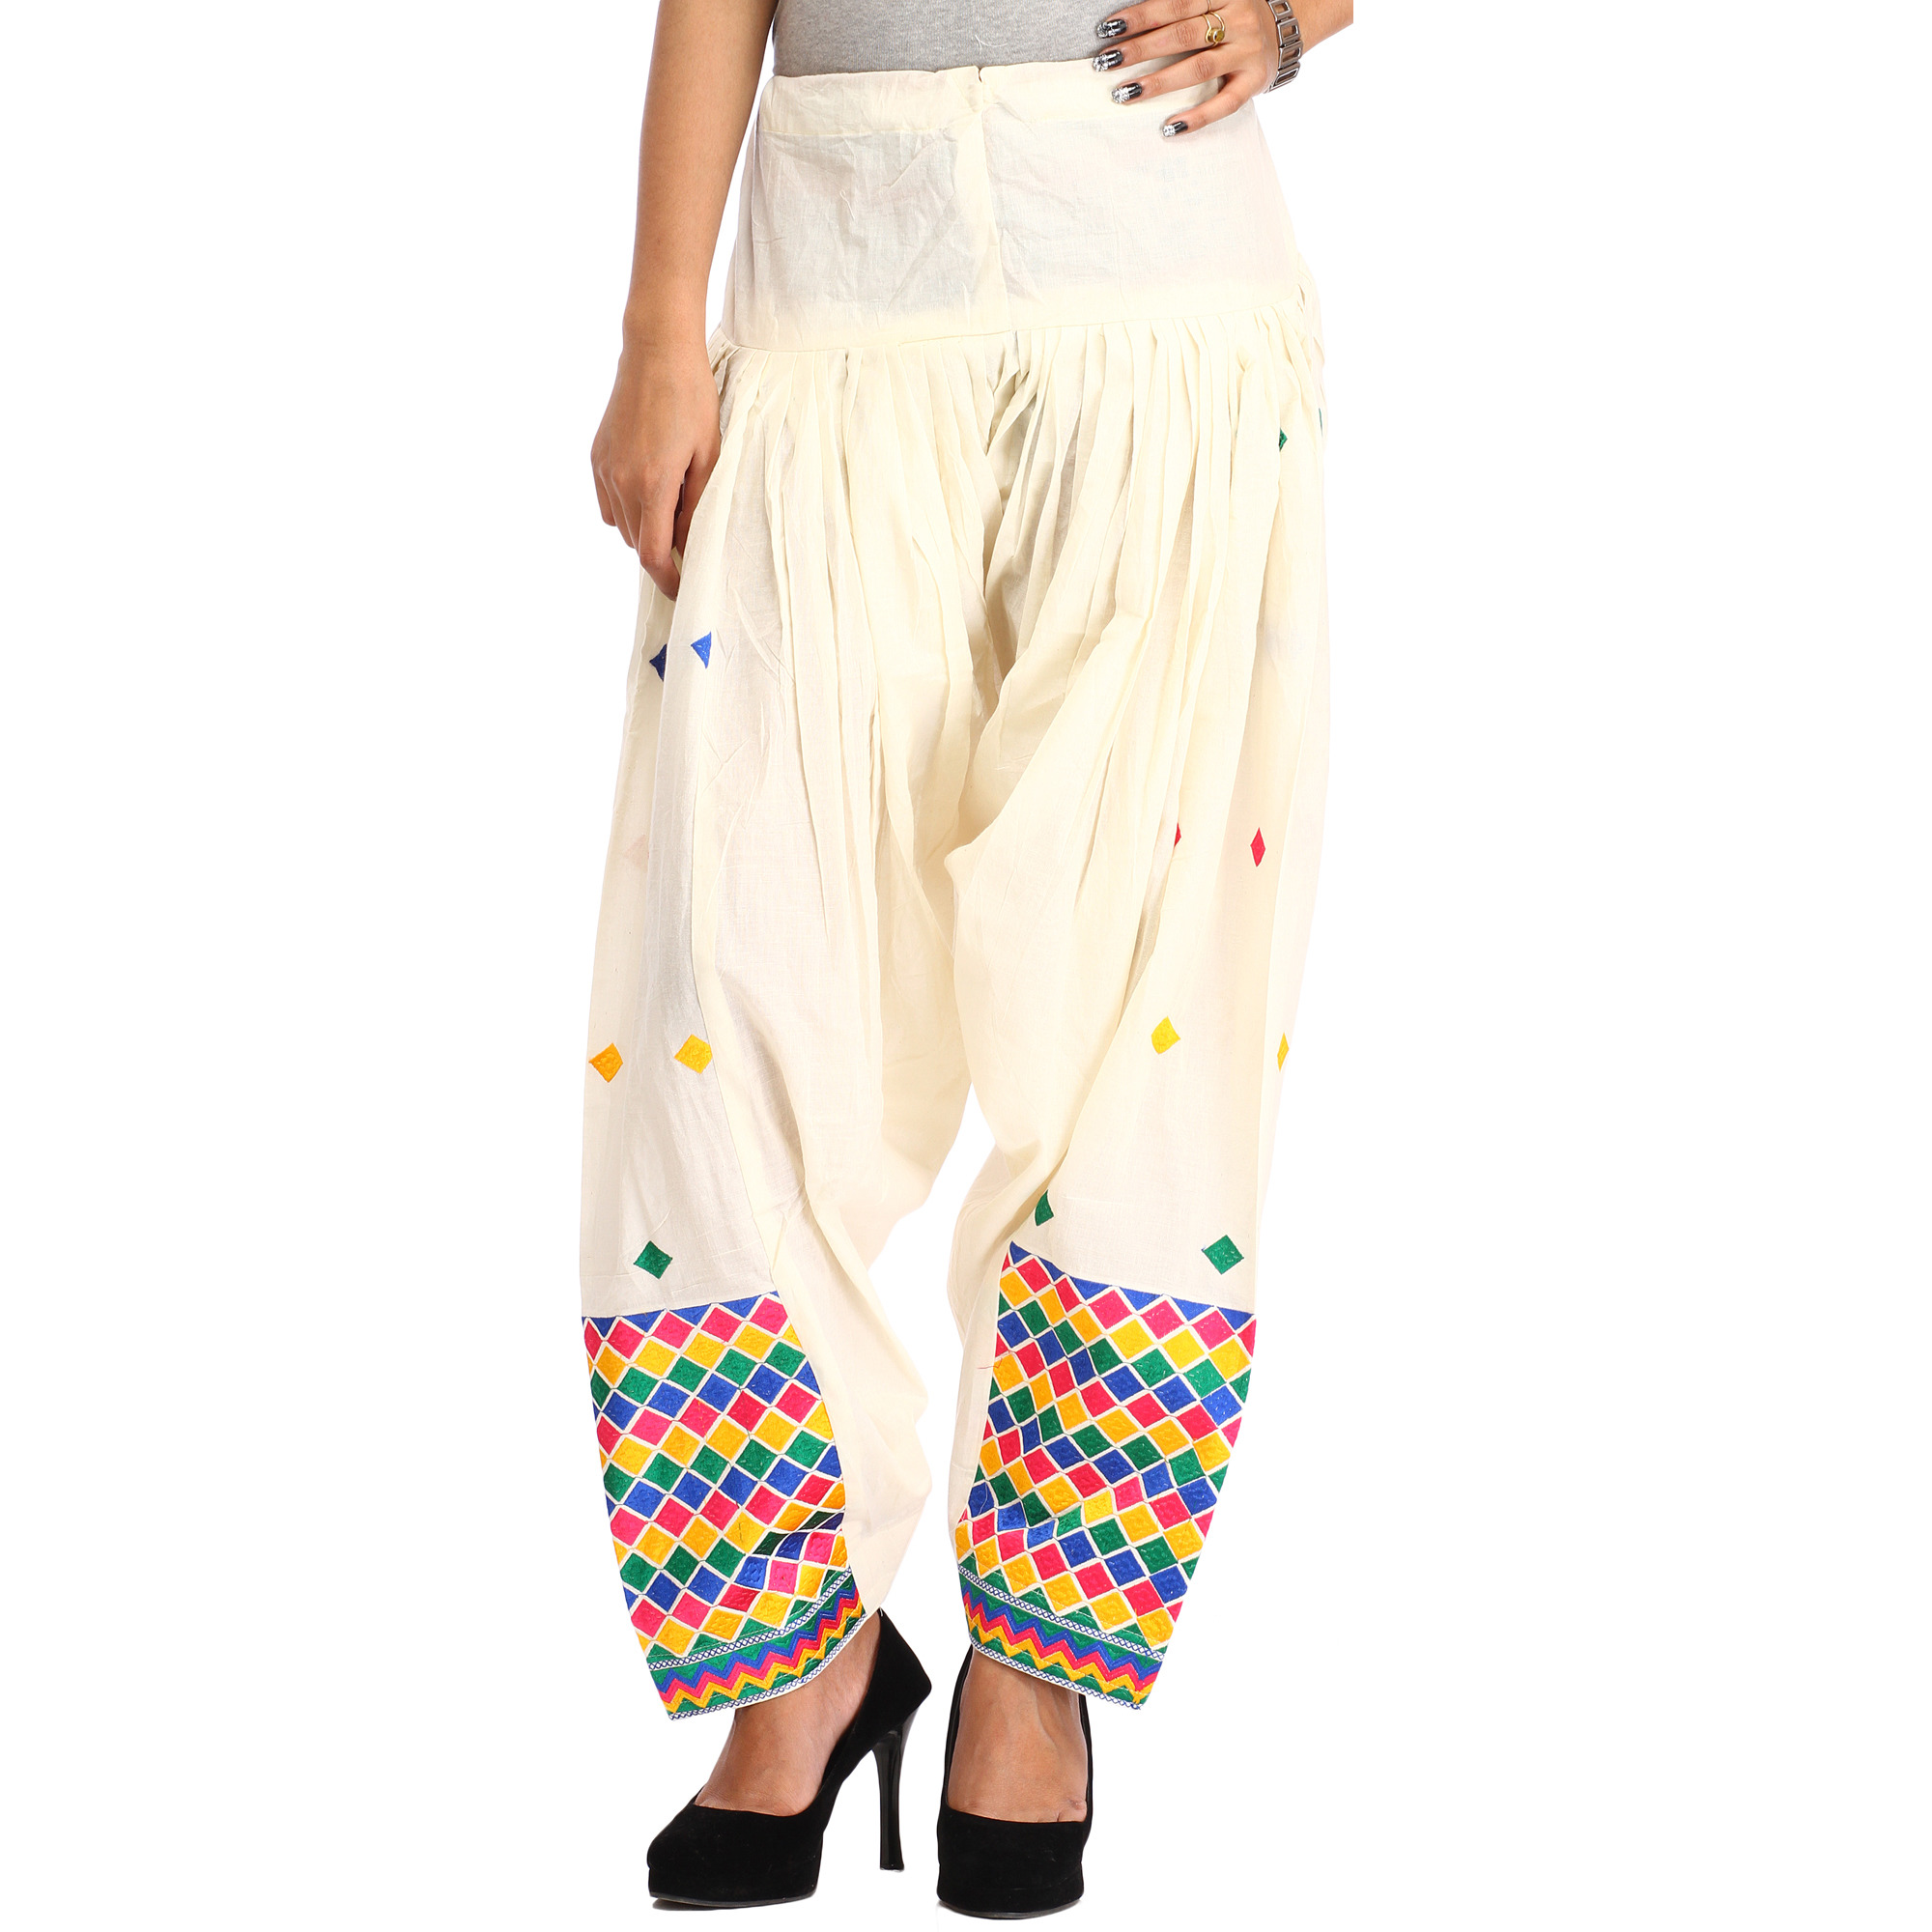 Off-White Patiala Salwar from Punjab with Phulkari Embroidery in Multicolor Thread